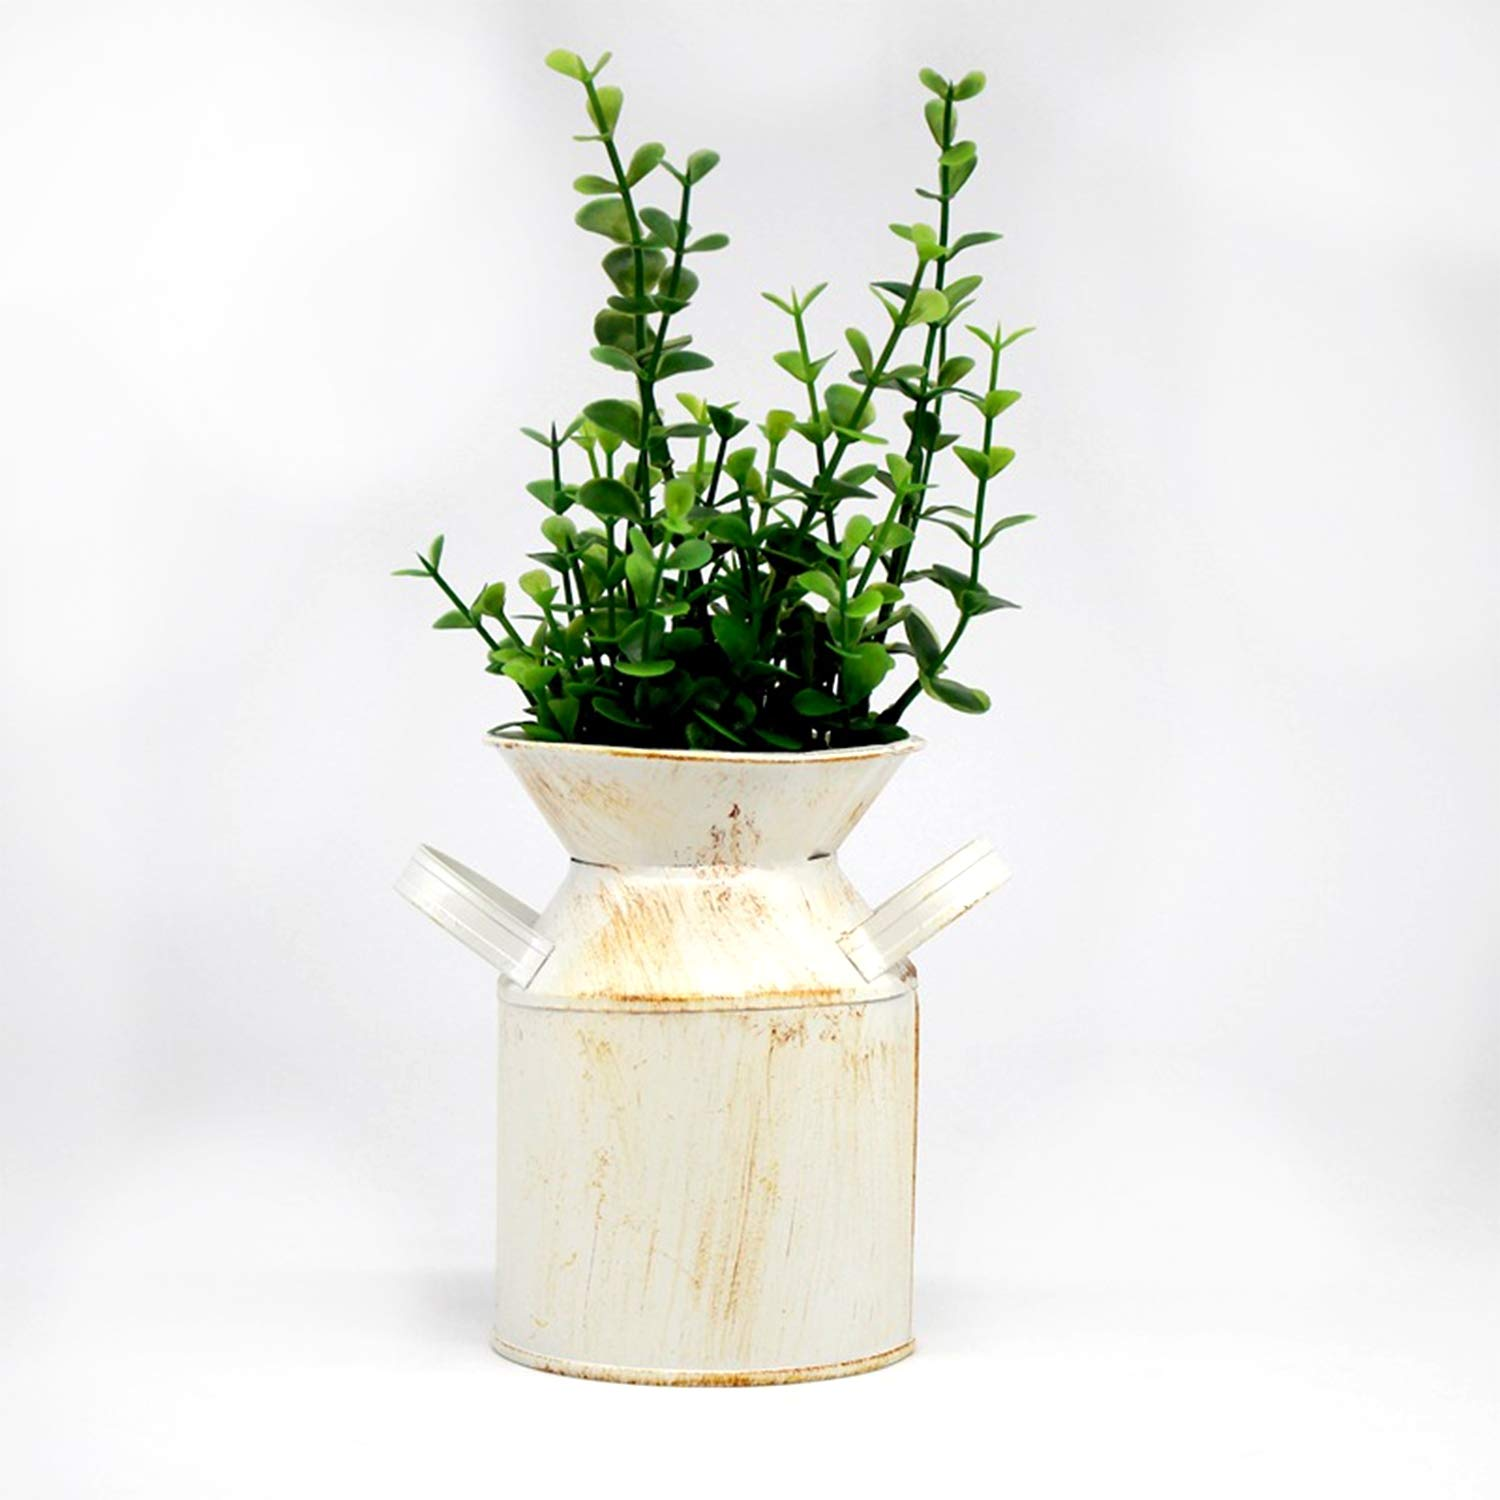 PURROMM Home Decoration Gift, Flower Planting kit Wrought Iron Flower Pot Indoor Decoration Table Potted Flower Grow kit 3 pas,B